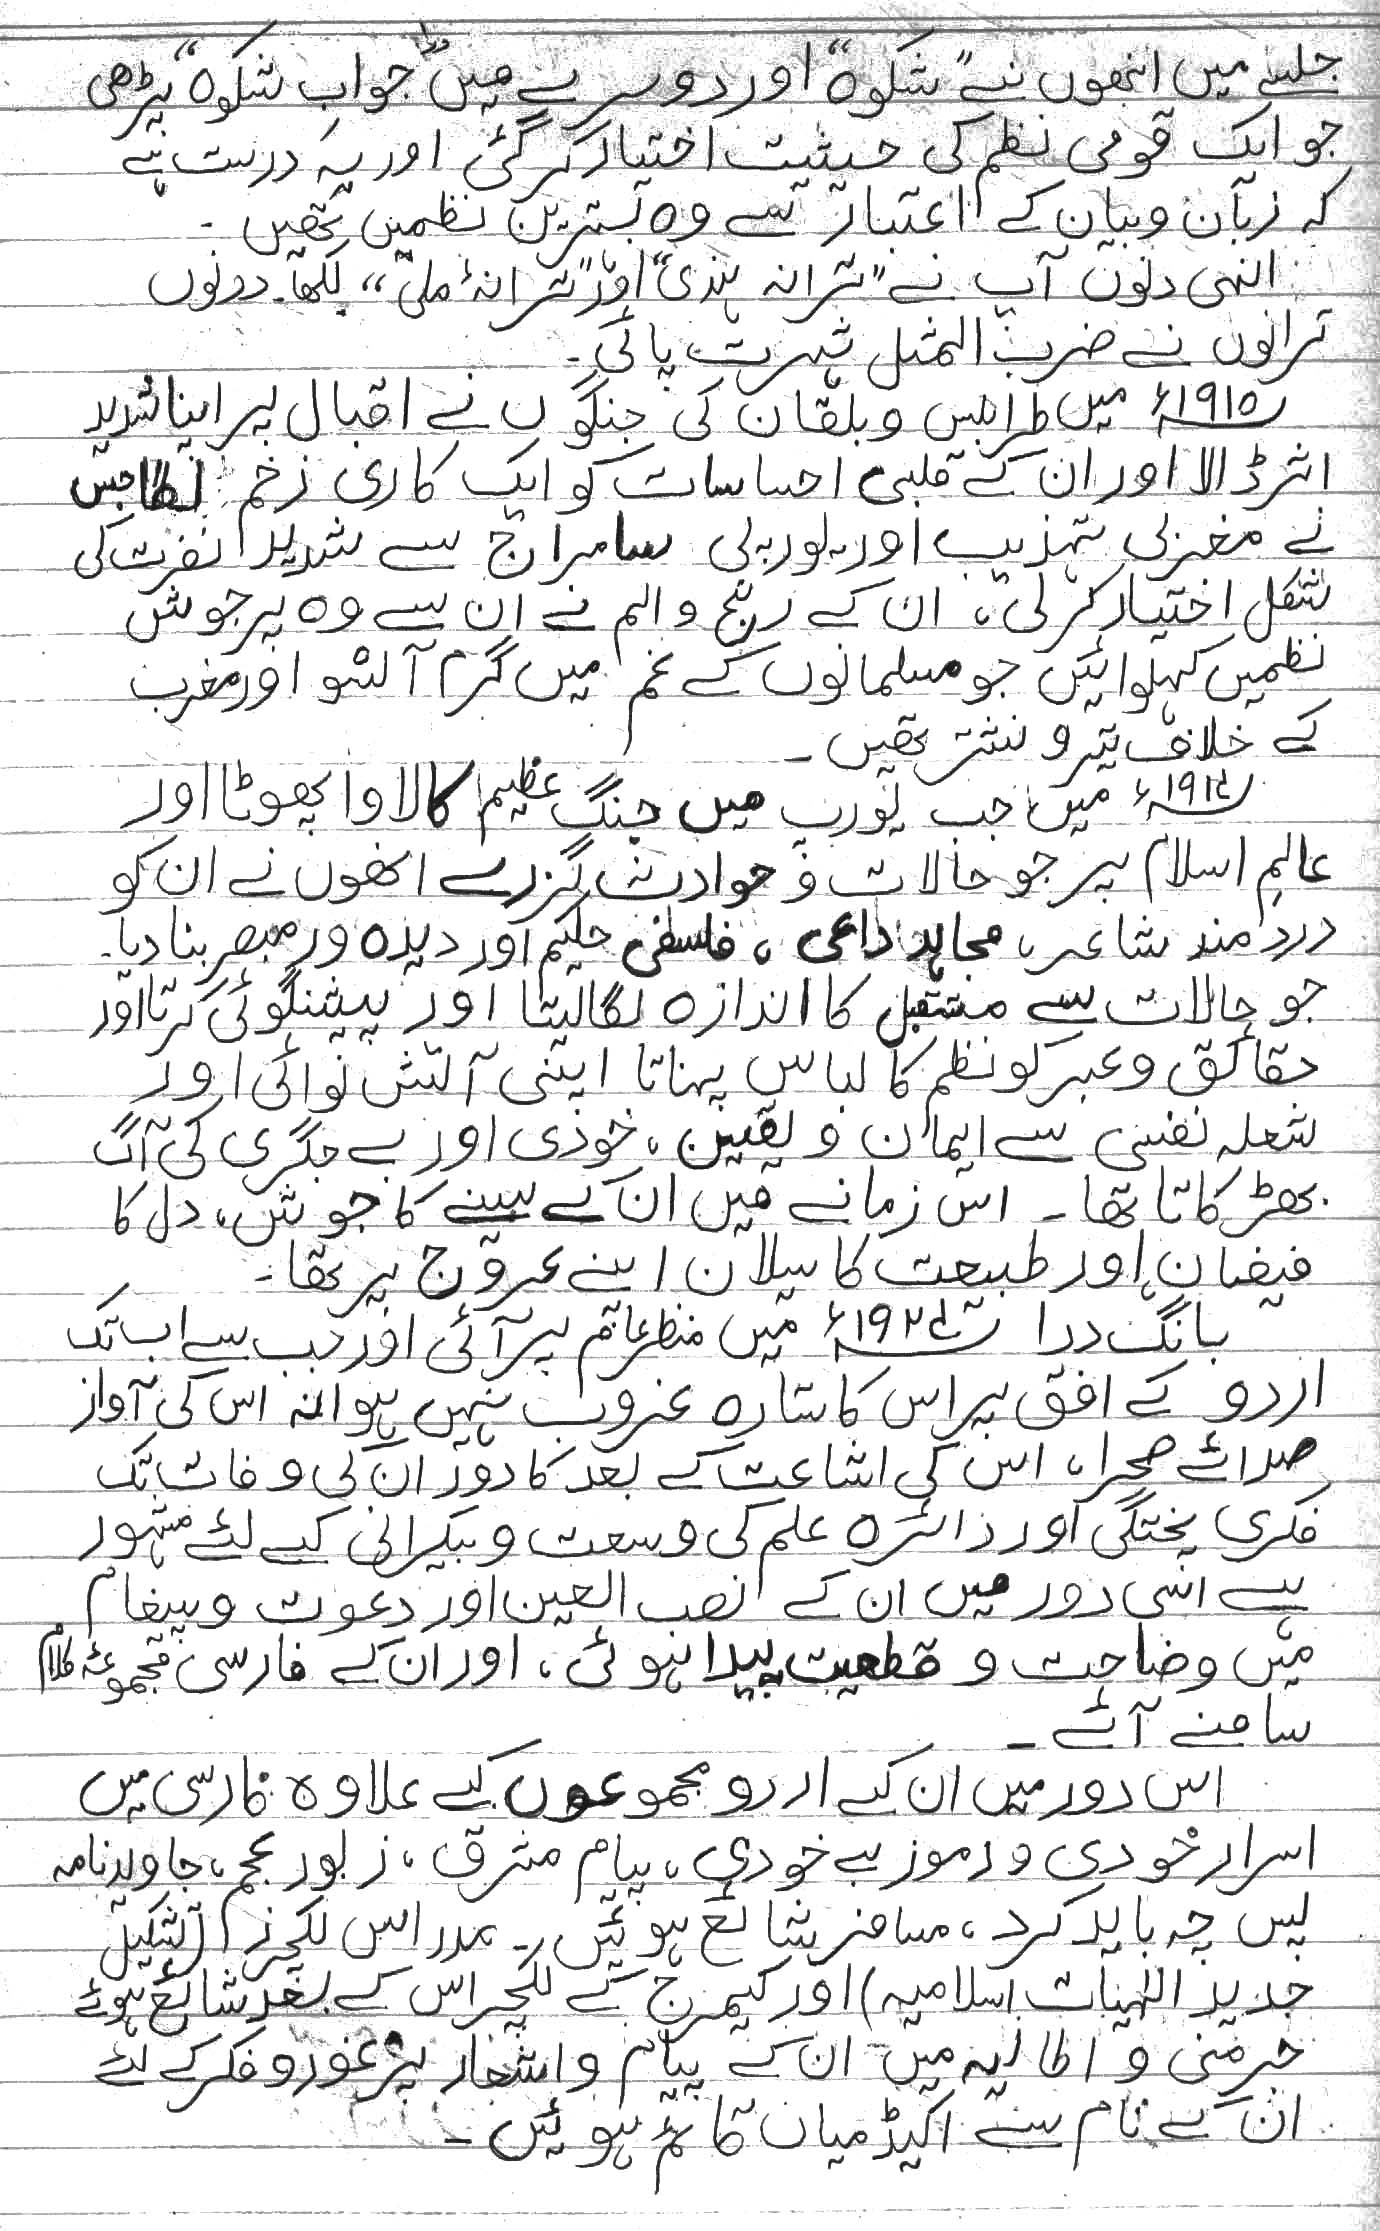 004 Urdu Essay Allama Iqbal Example Dreaded On In For Class 10 With Poetry Ka Shaheen Headings And Full